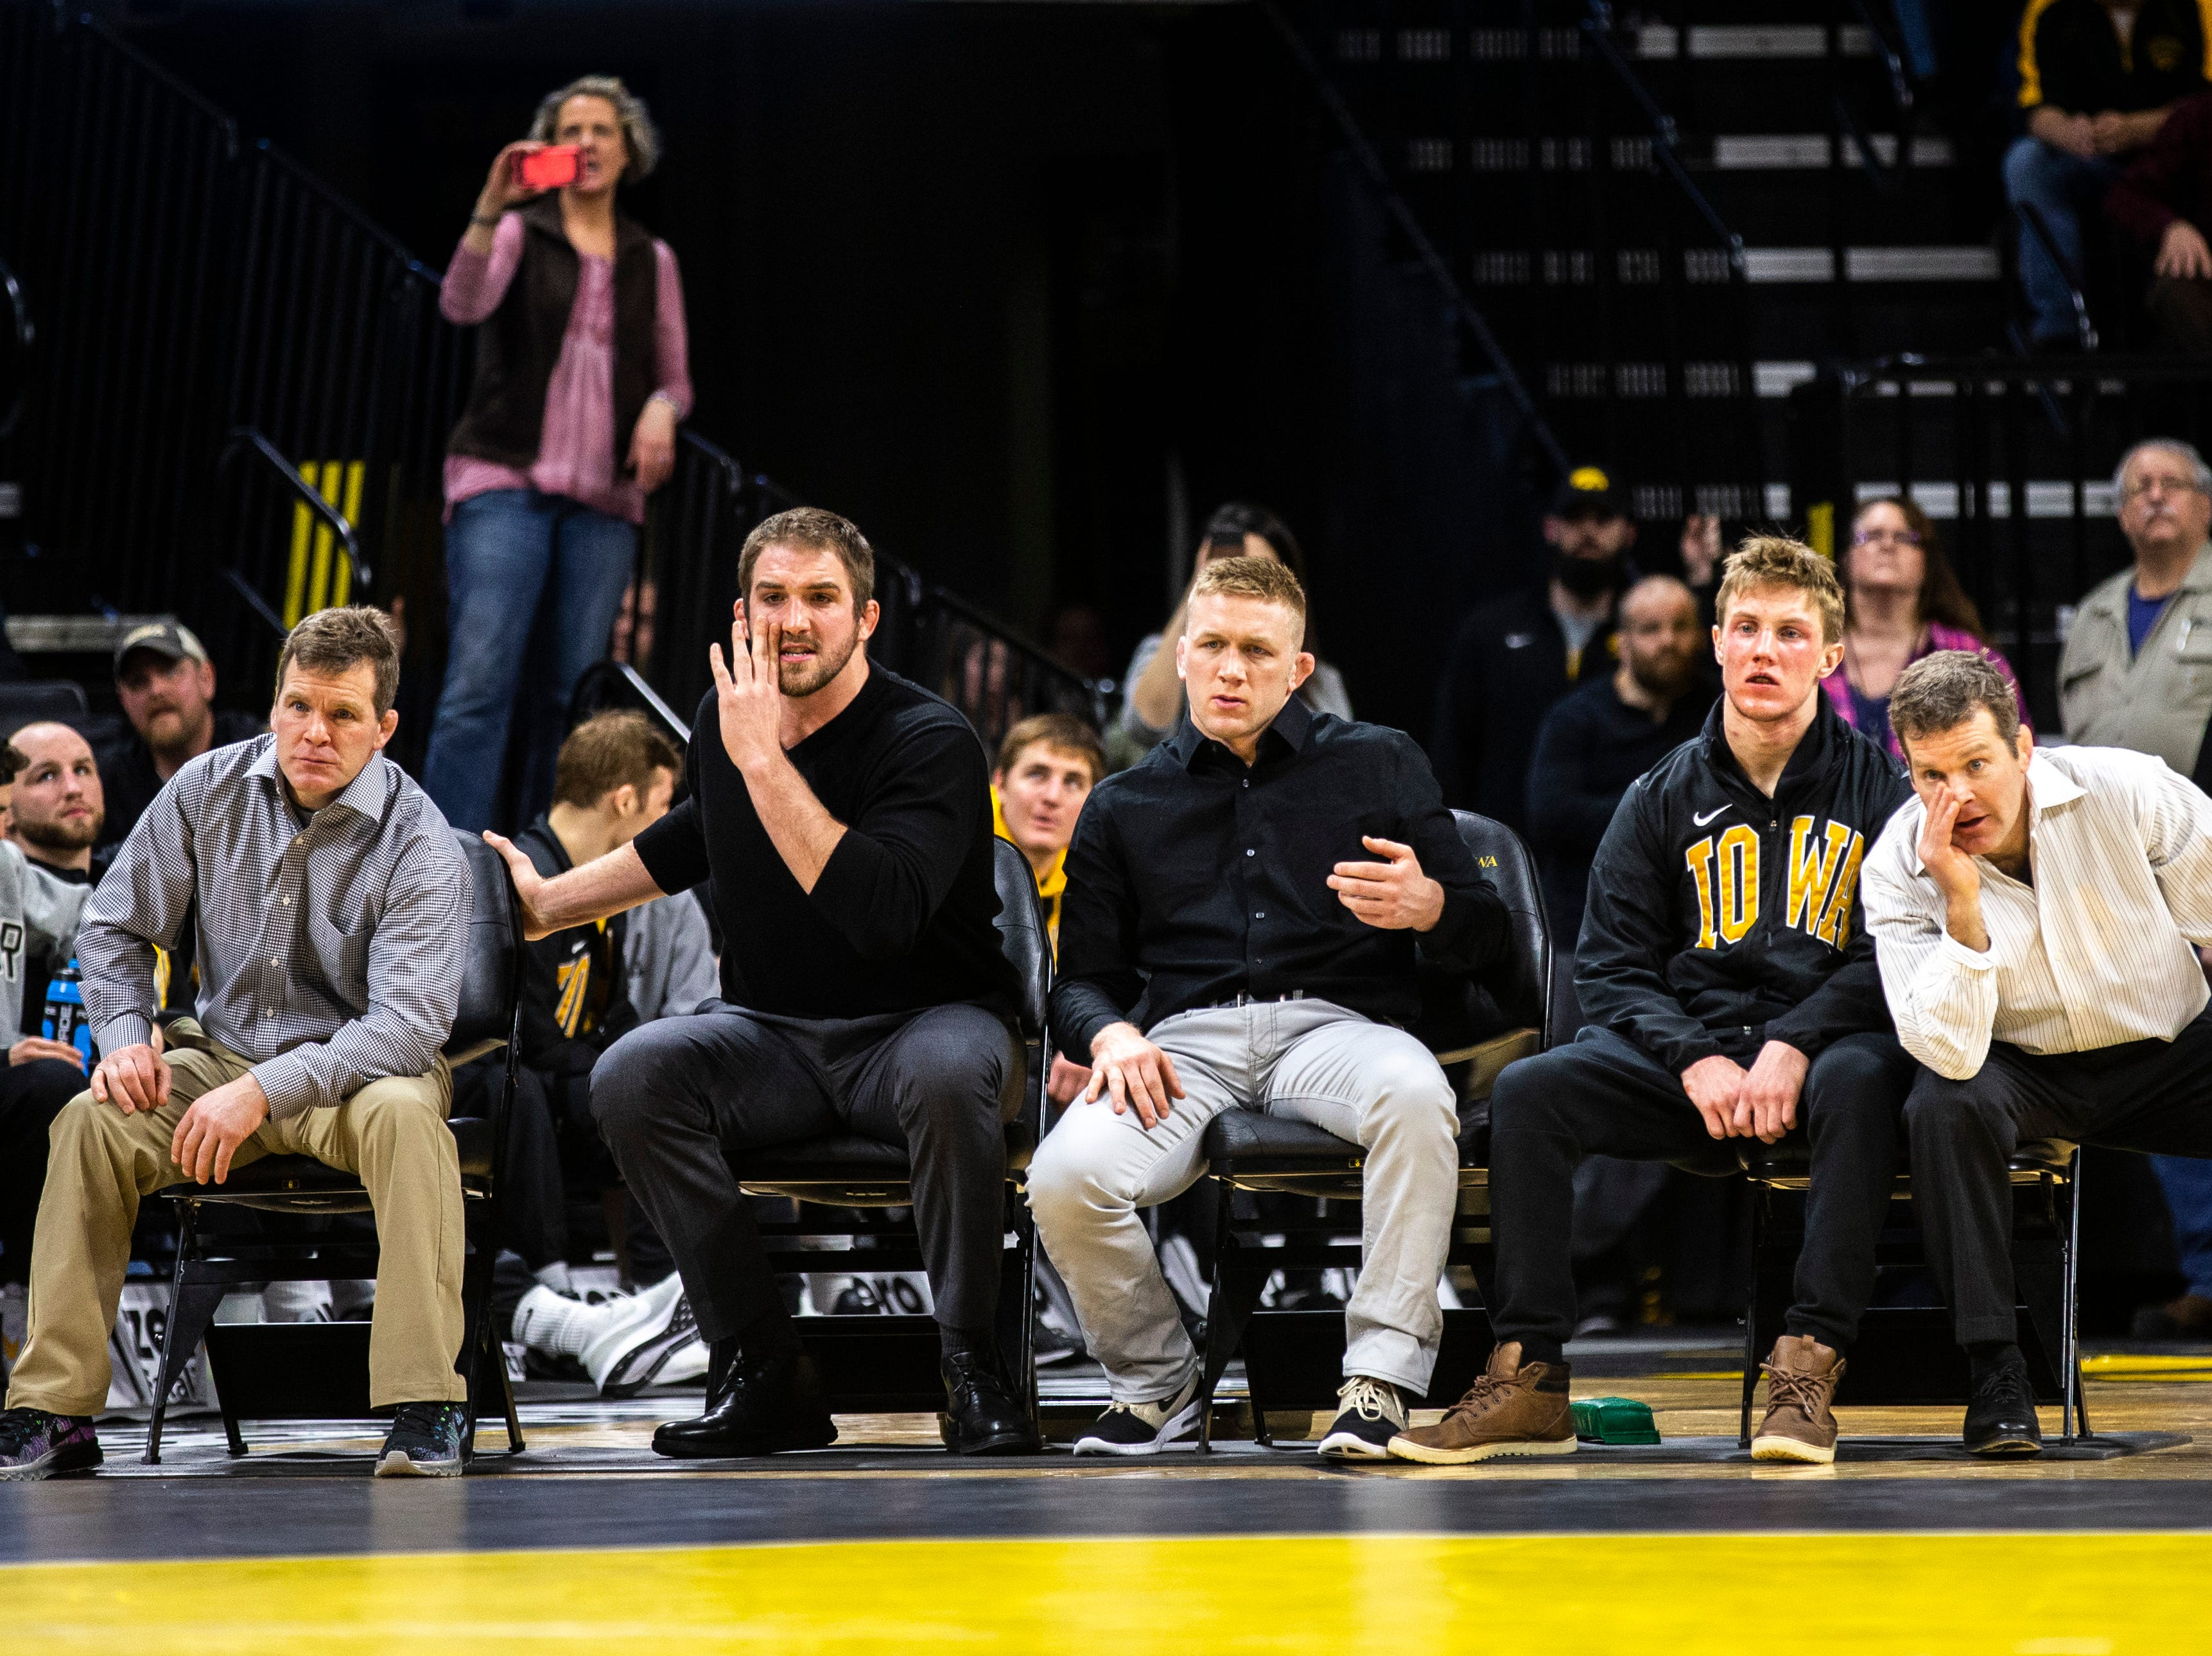 Iowa associate head coach Terry Brands, assistants Bobby Telford and Ryan Morningstar, 141-pounder Max Murin and head coach Tom Brands watch a match from the bench during a NCAA Big Ten Conference wrestling dual on Friday, Feb. 15, 2019 at Carver-Hawkeye Arena in Iowa City, Iowa.